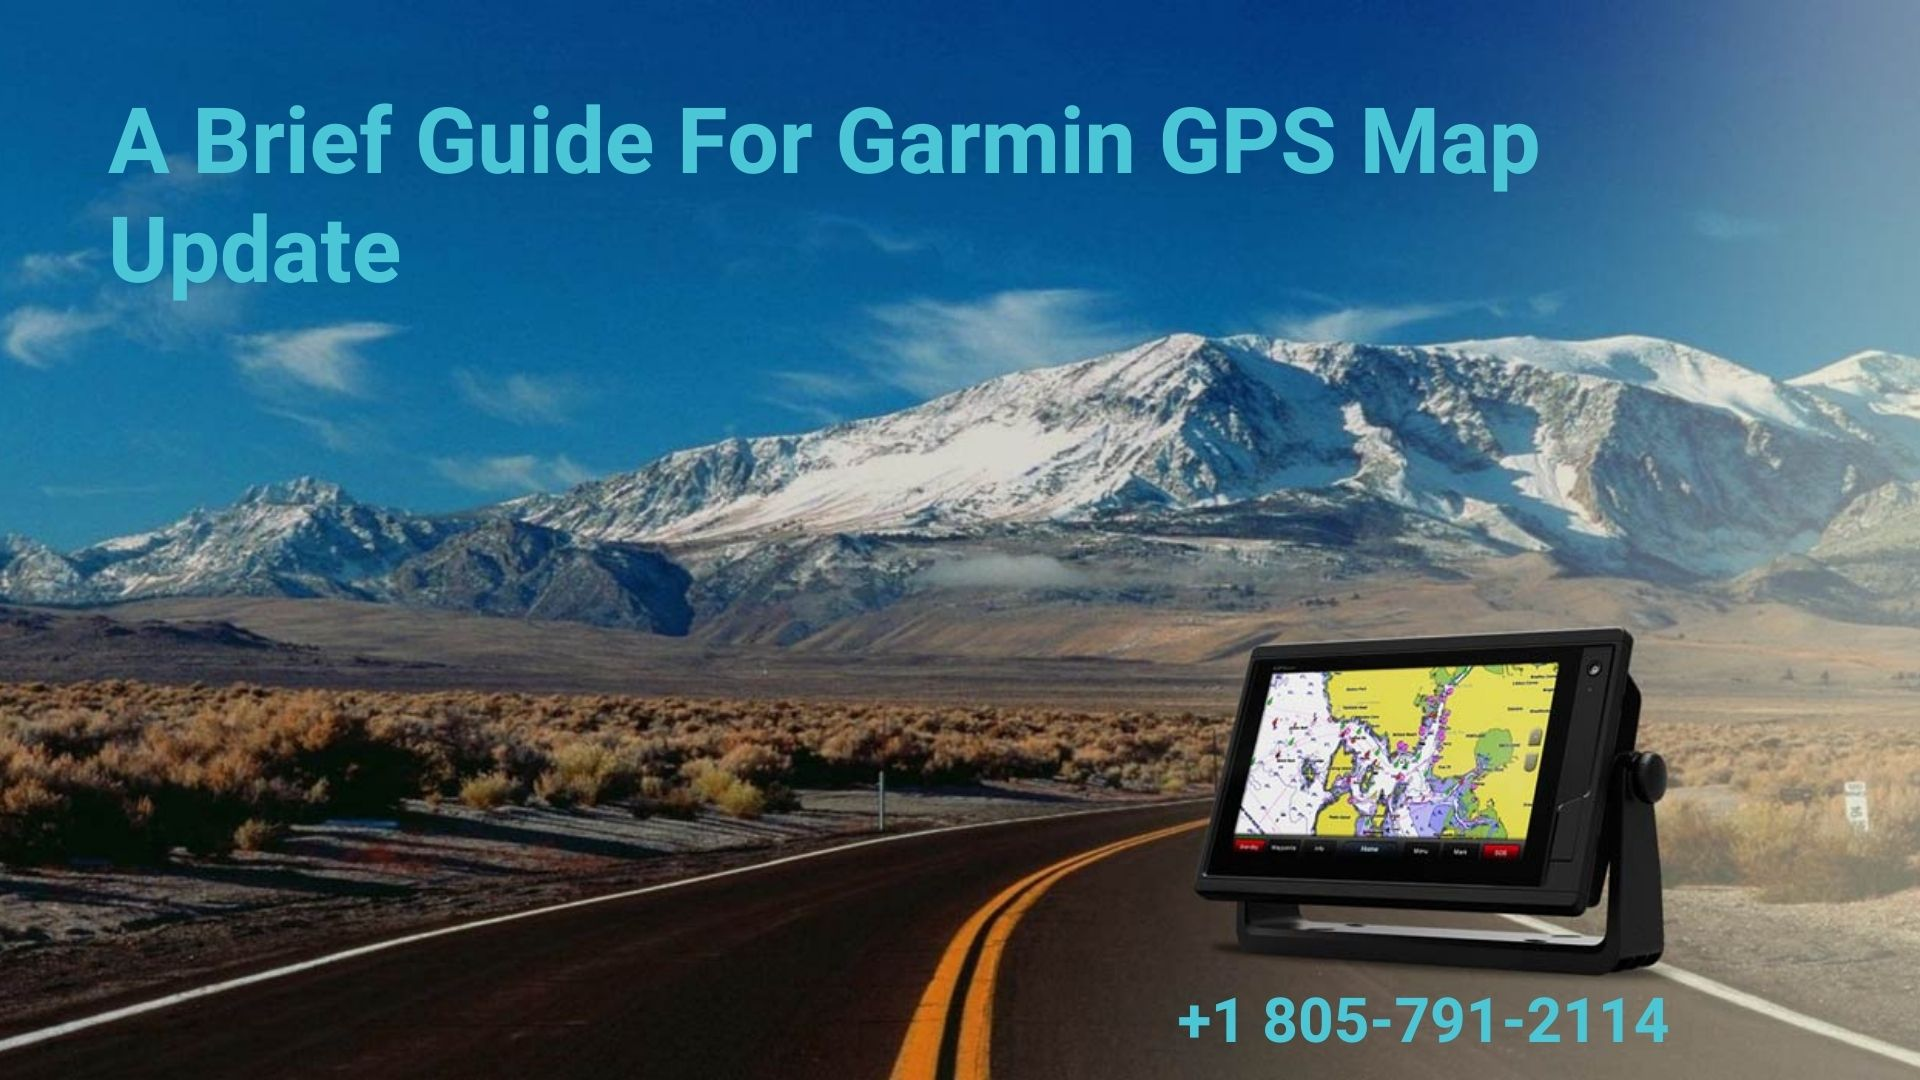 A Brief Guide For Garmin GPS Map Update